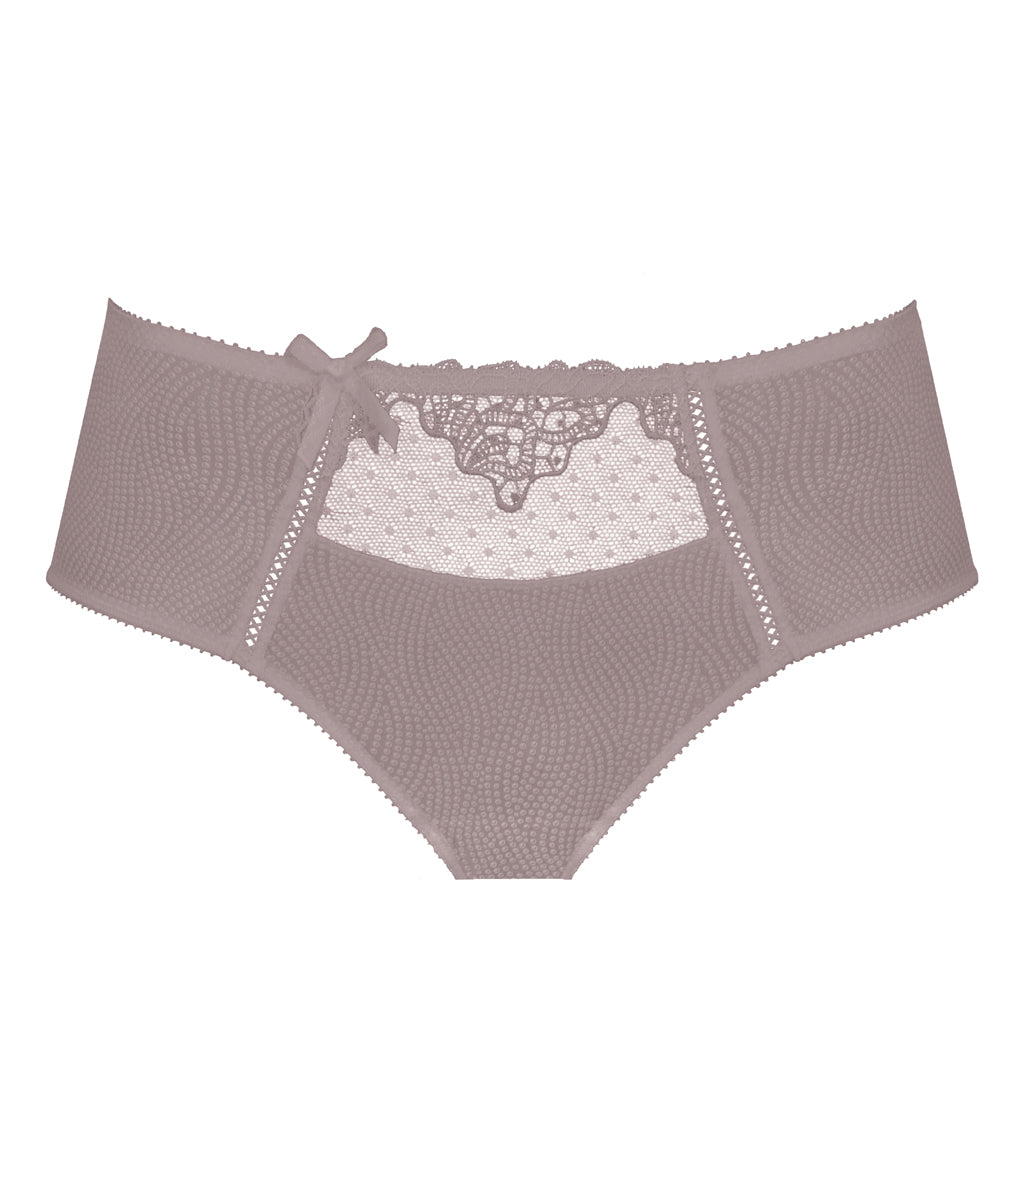 Empreinte 'Erin' (Noisette) Full Brief - Sandra Dee - Product Shot - Front